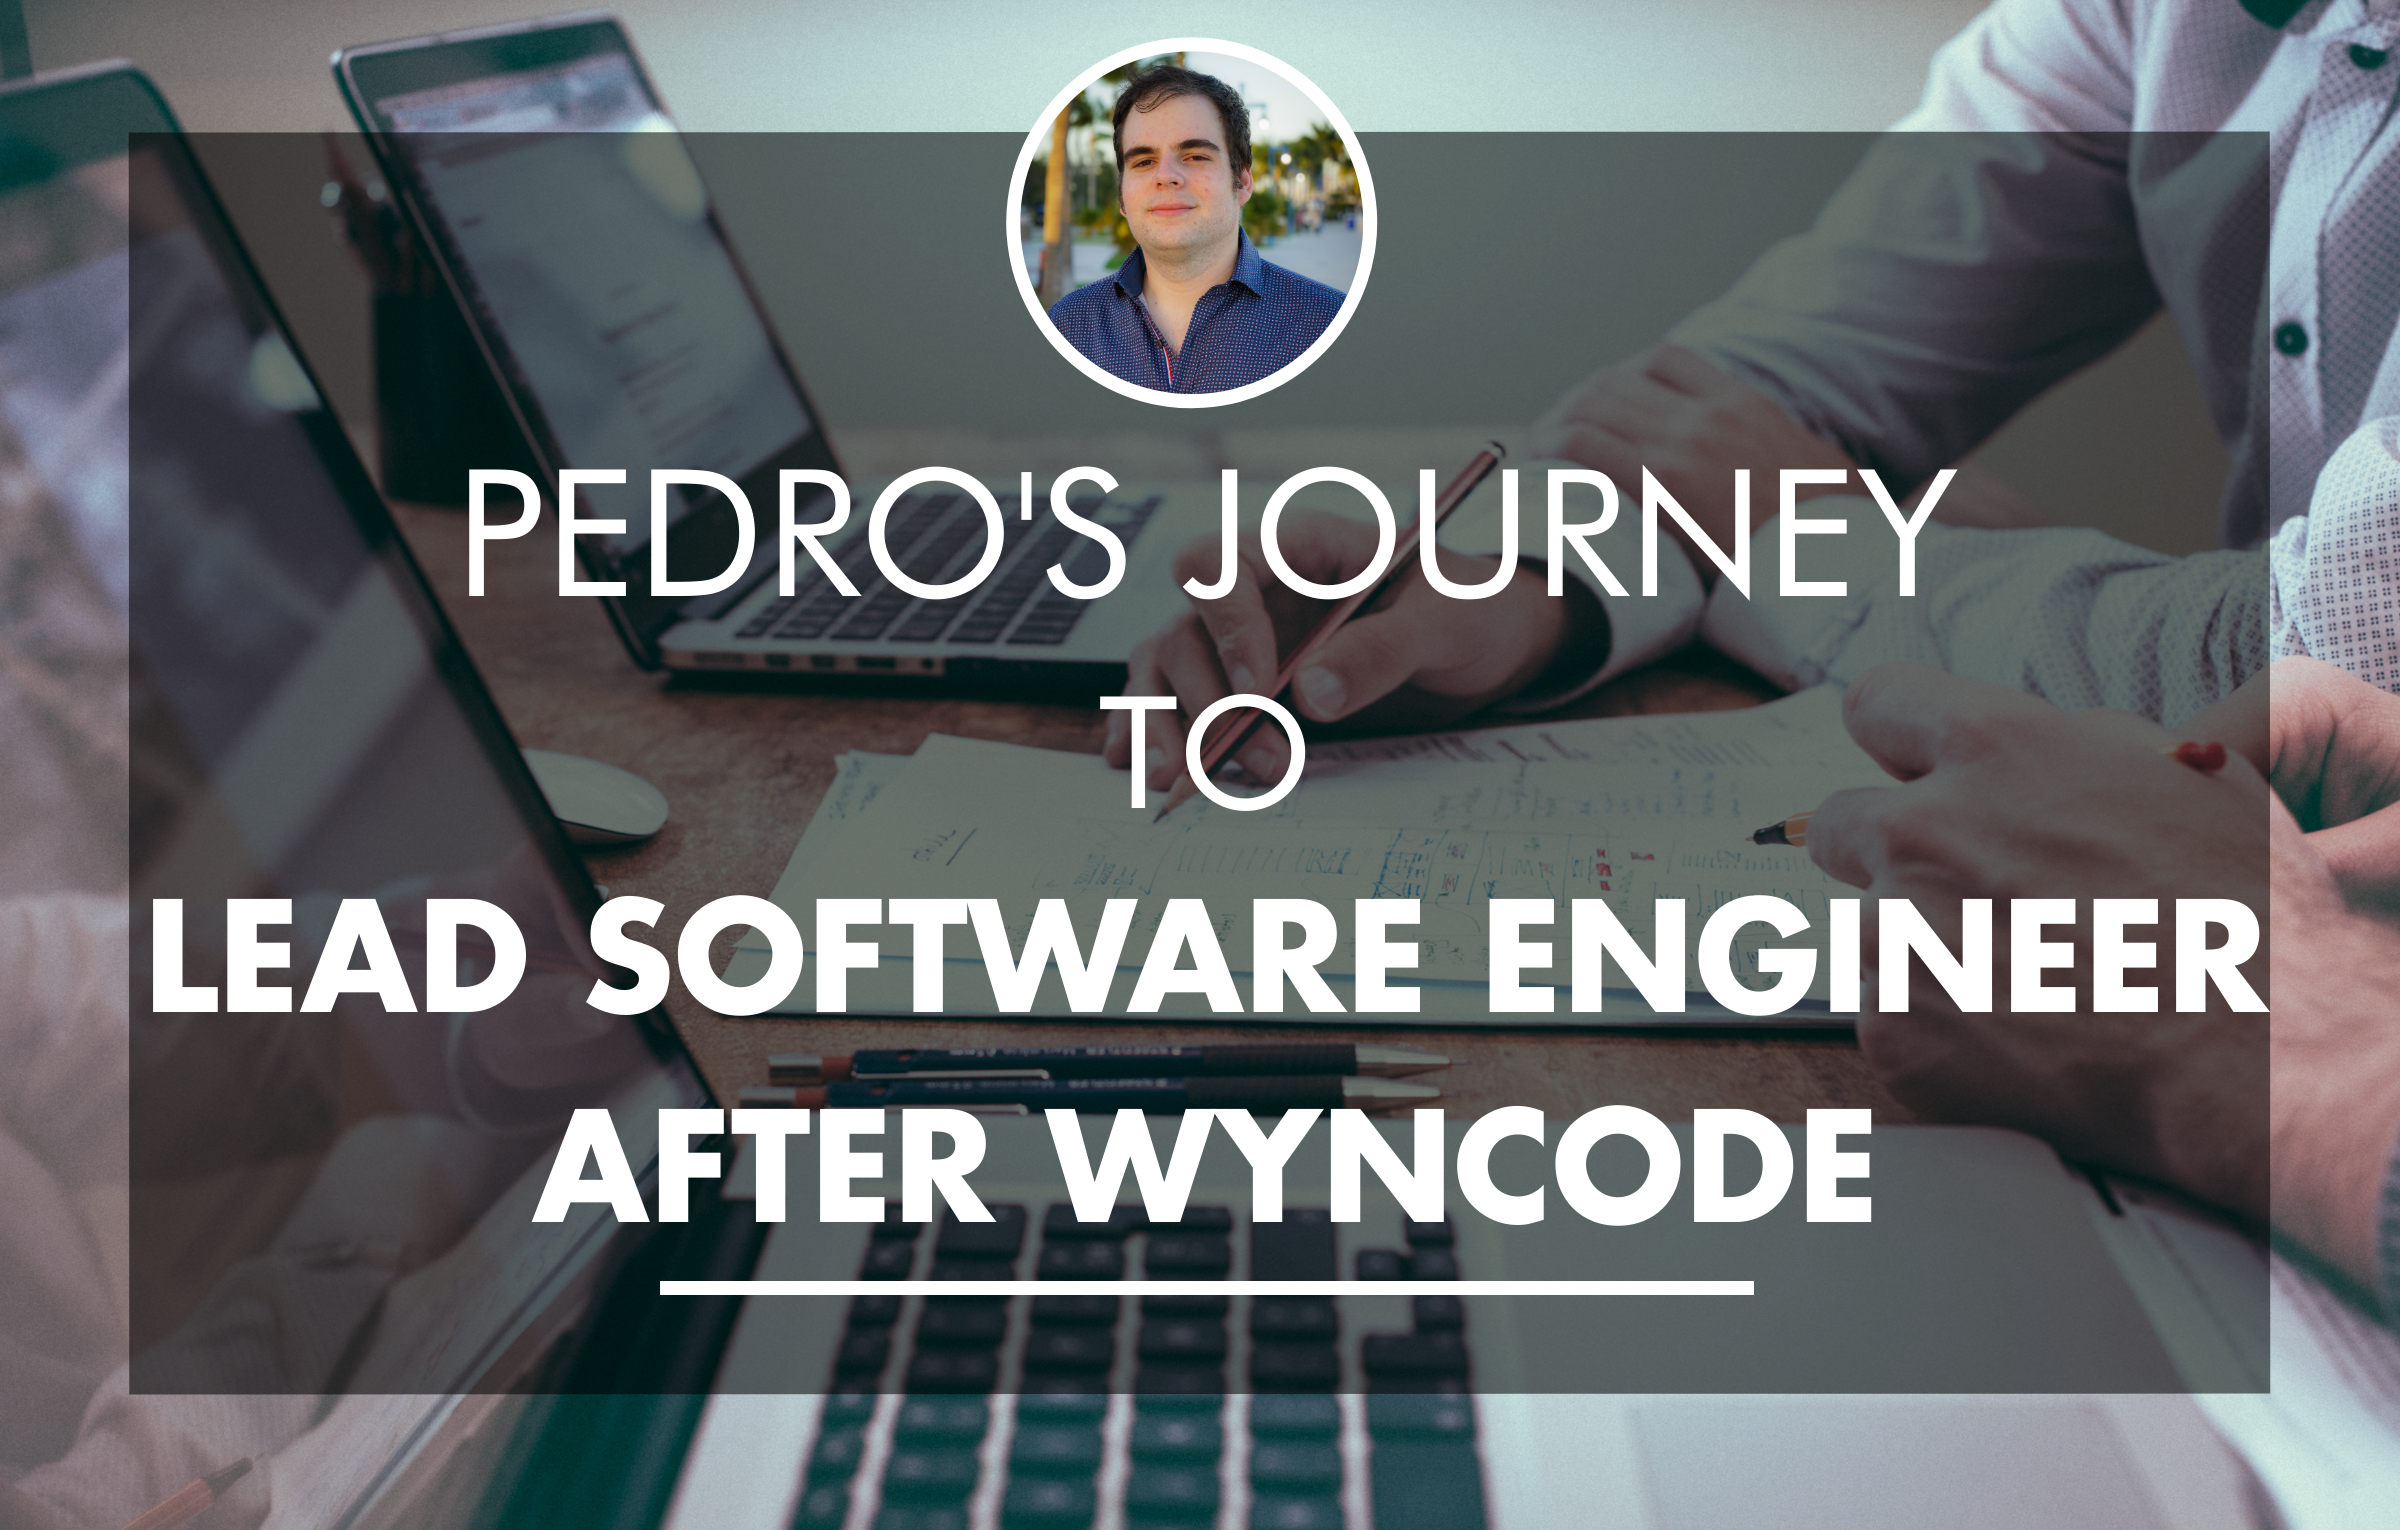 pedro-journey-to-lead-software-engineer-after-wyncode-coding-bootcamp-Miami-Florida